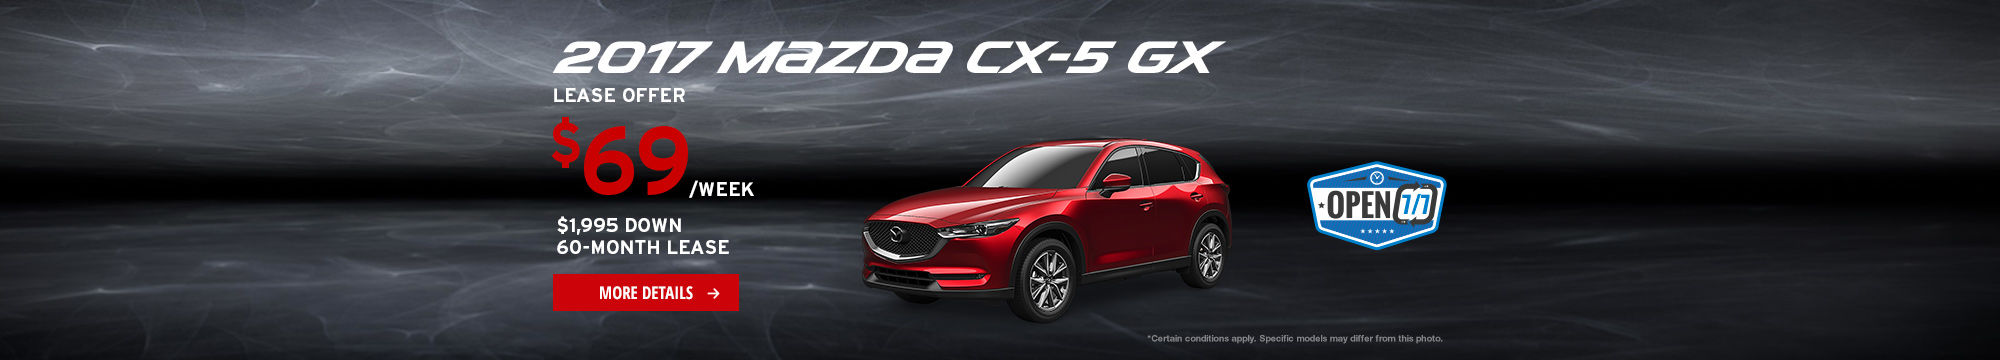 Upgrade to Mazda Event - CX-5